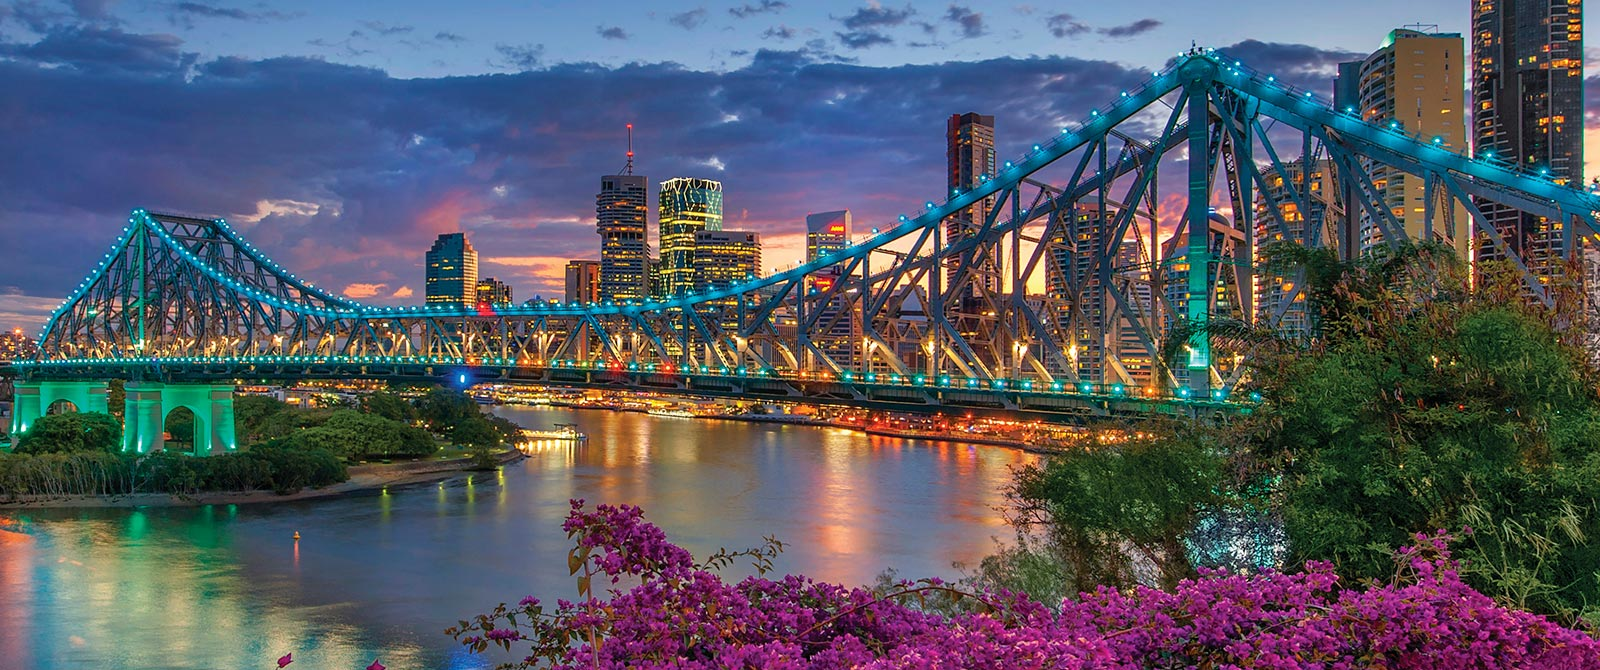 Story Bridge and the Brisbane Skyline - Australia Reef, Rainforest, and Brisbane Explorer Package